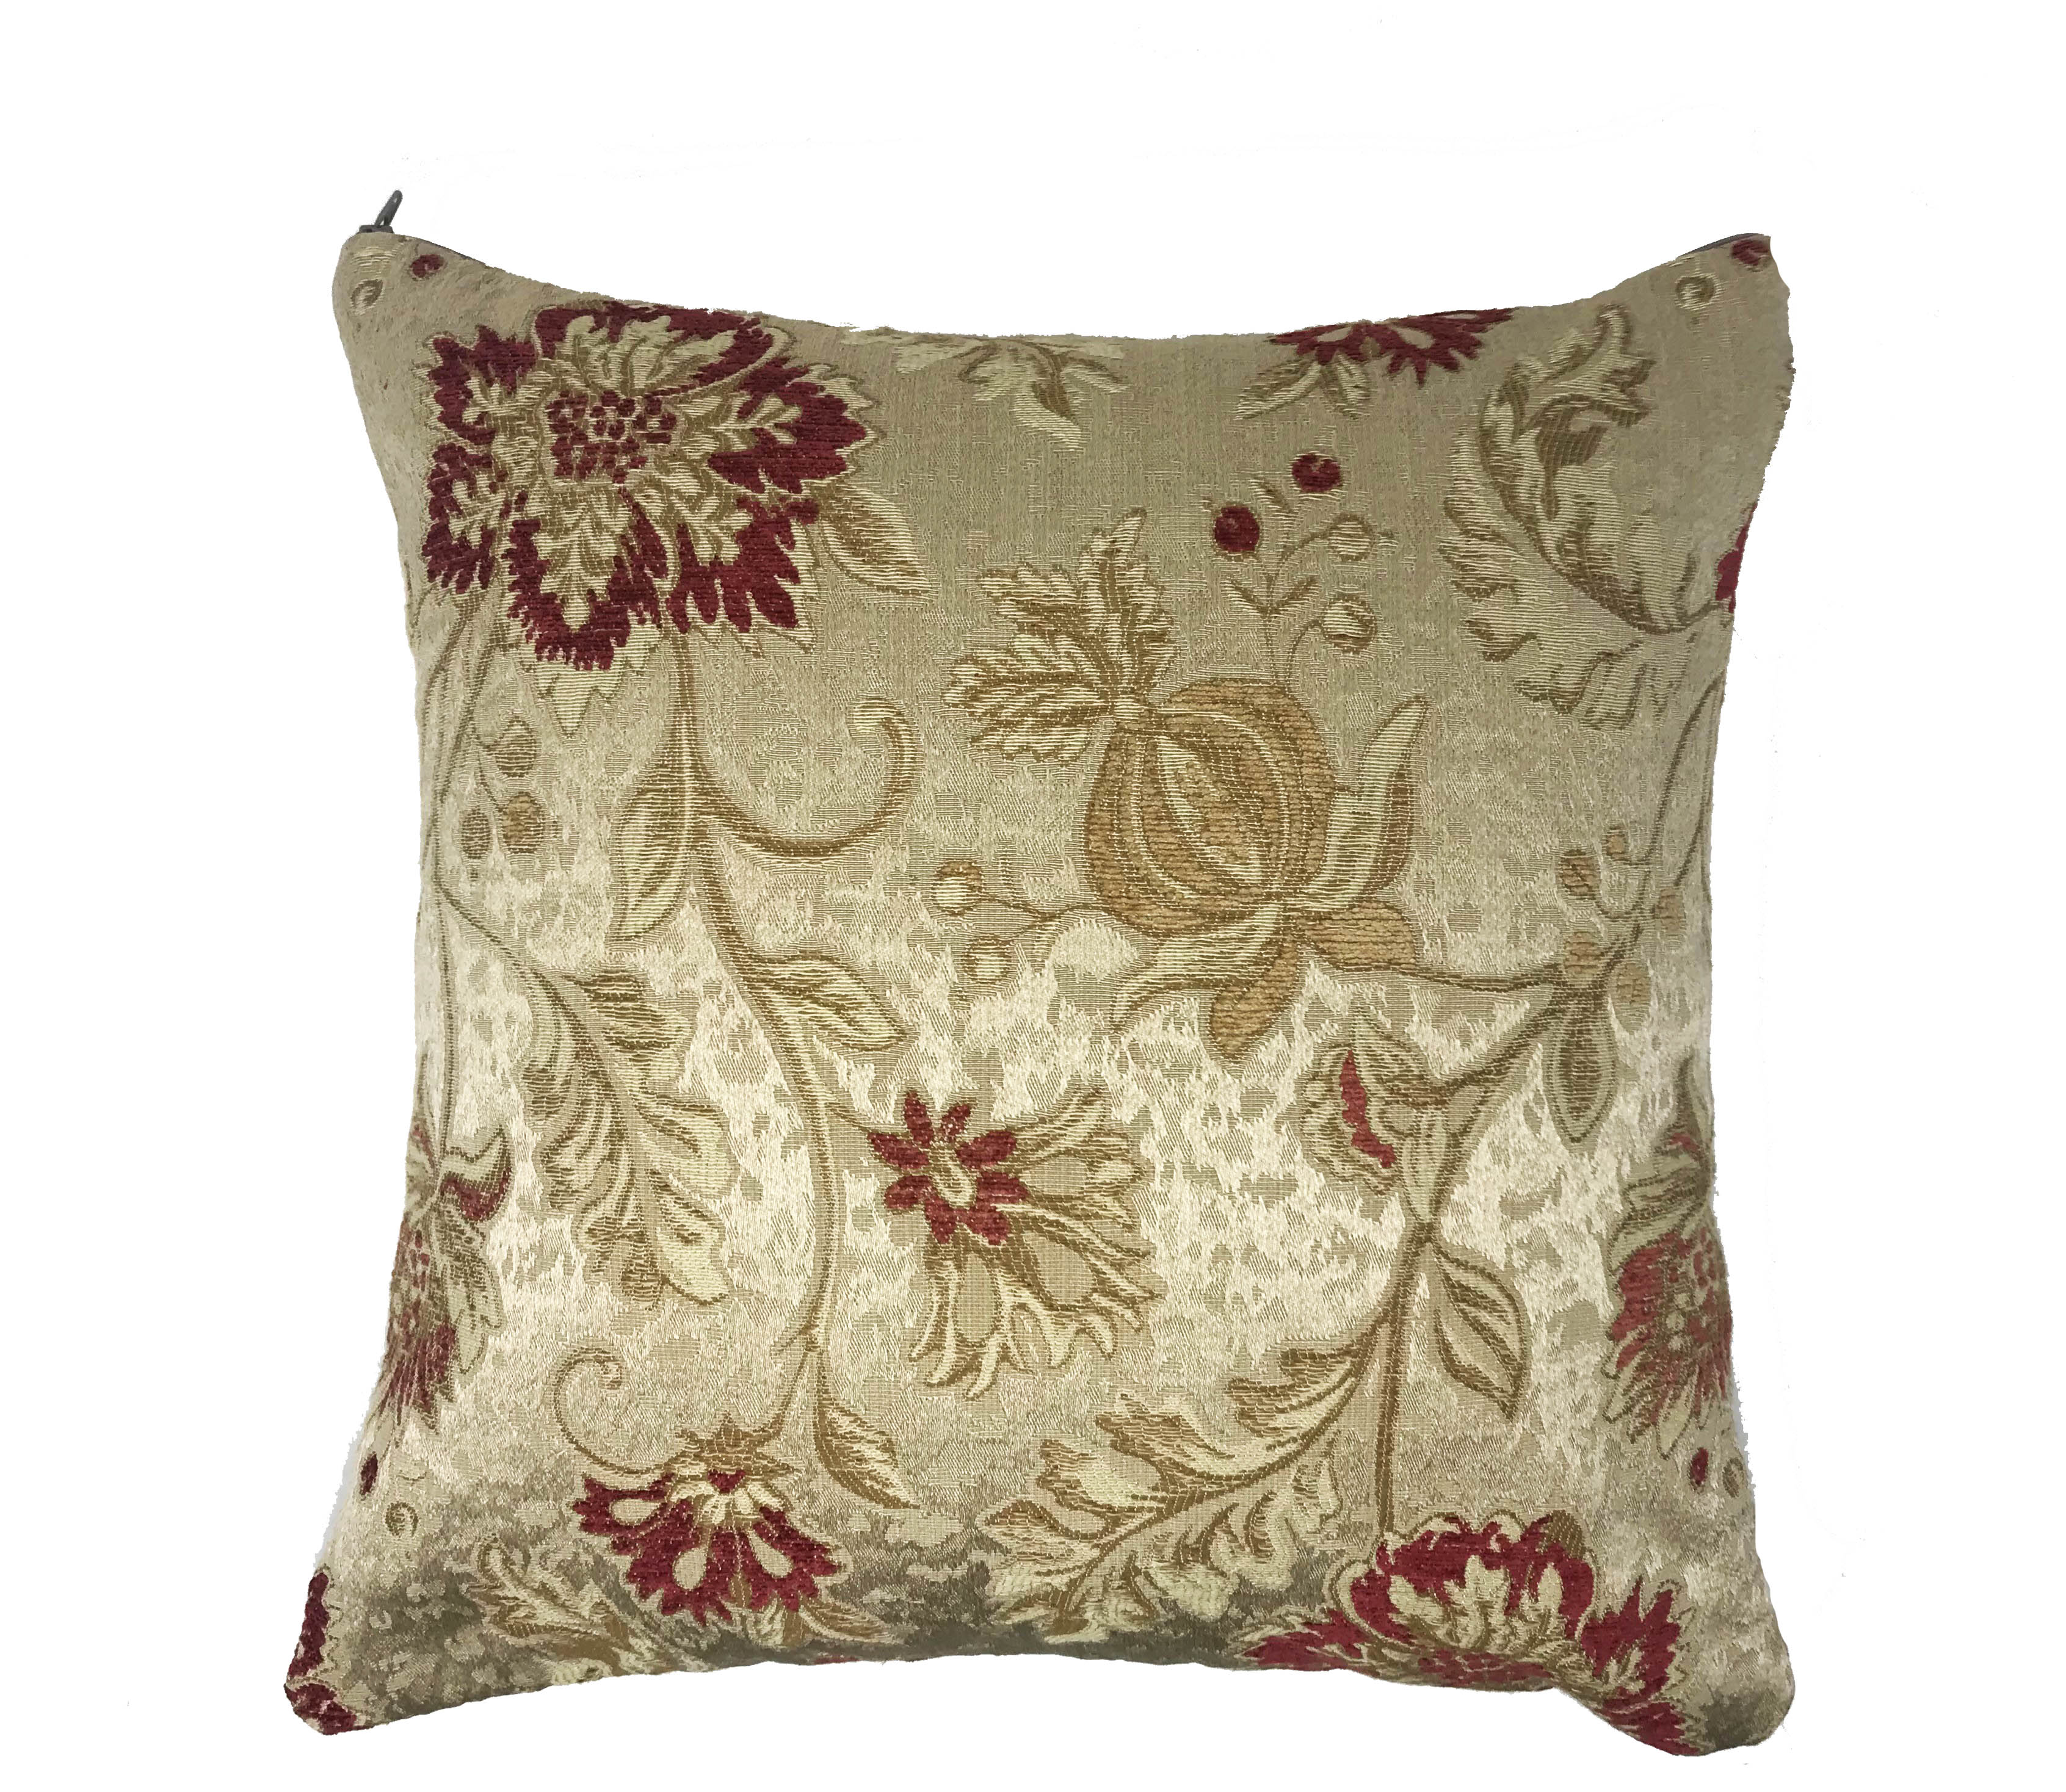 Floral Embroidered 43cm x 43cm Cushion Cover Only